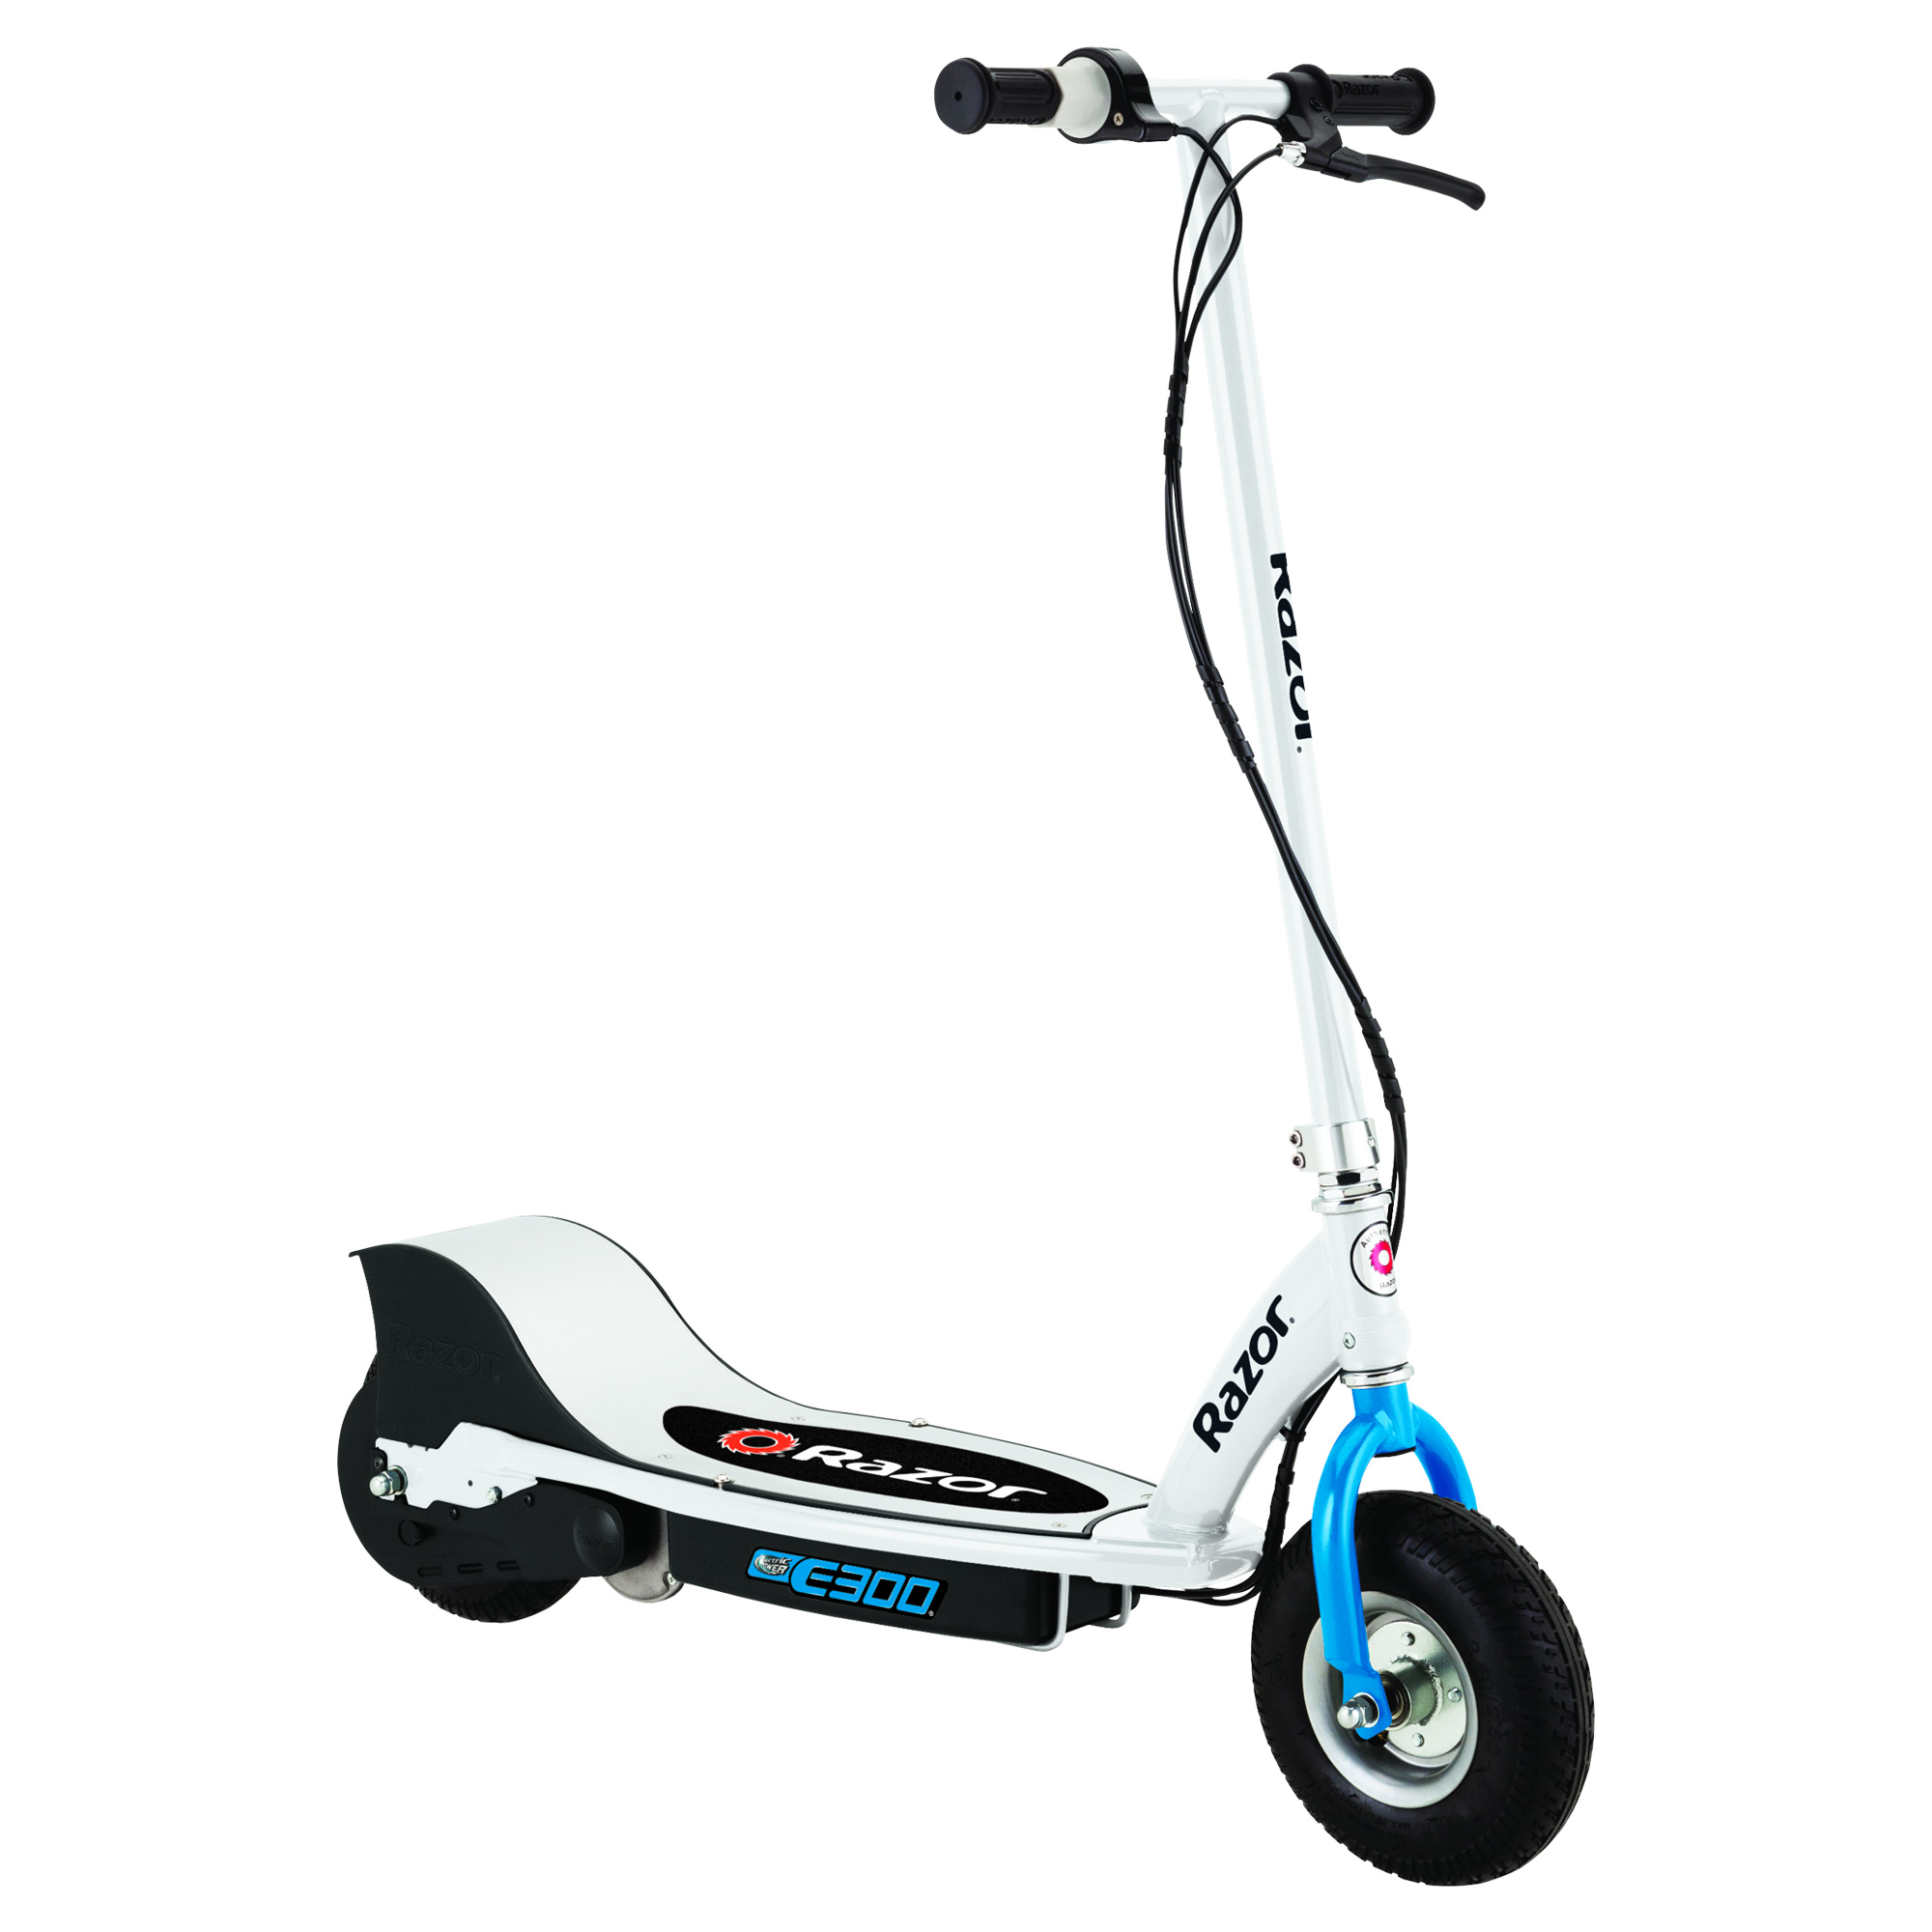 VGC Razor E300 Electric Scooter Replacement FULL FRAME GRAY